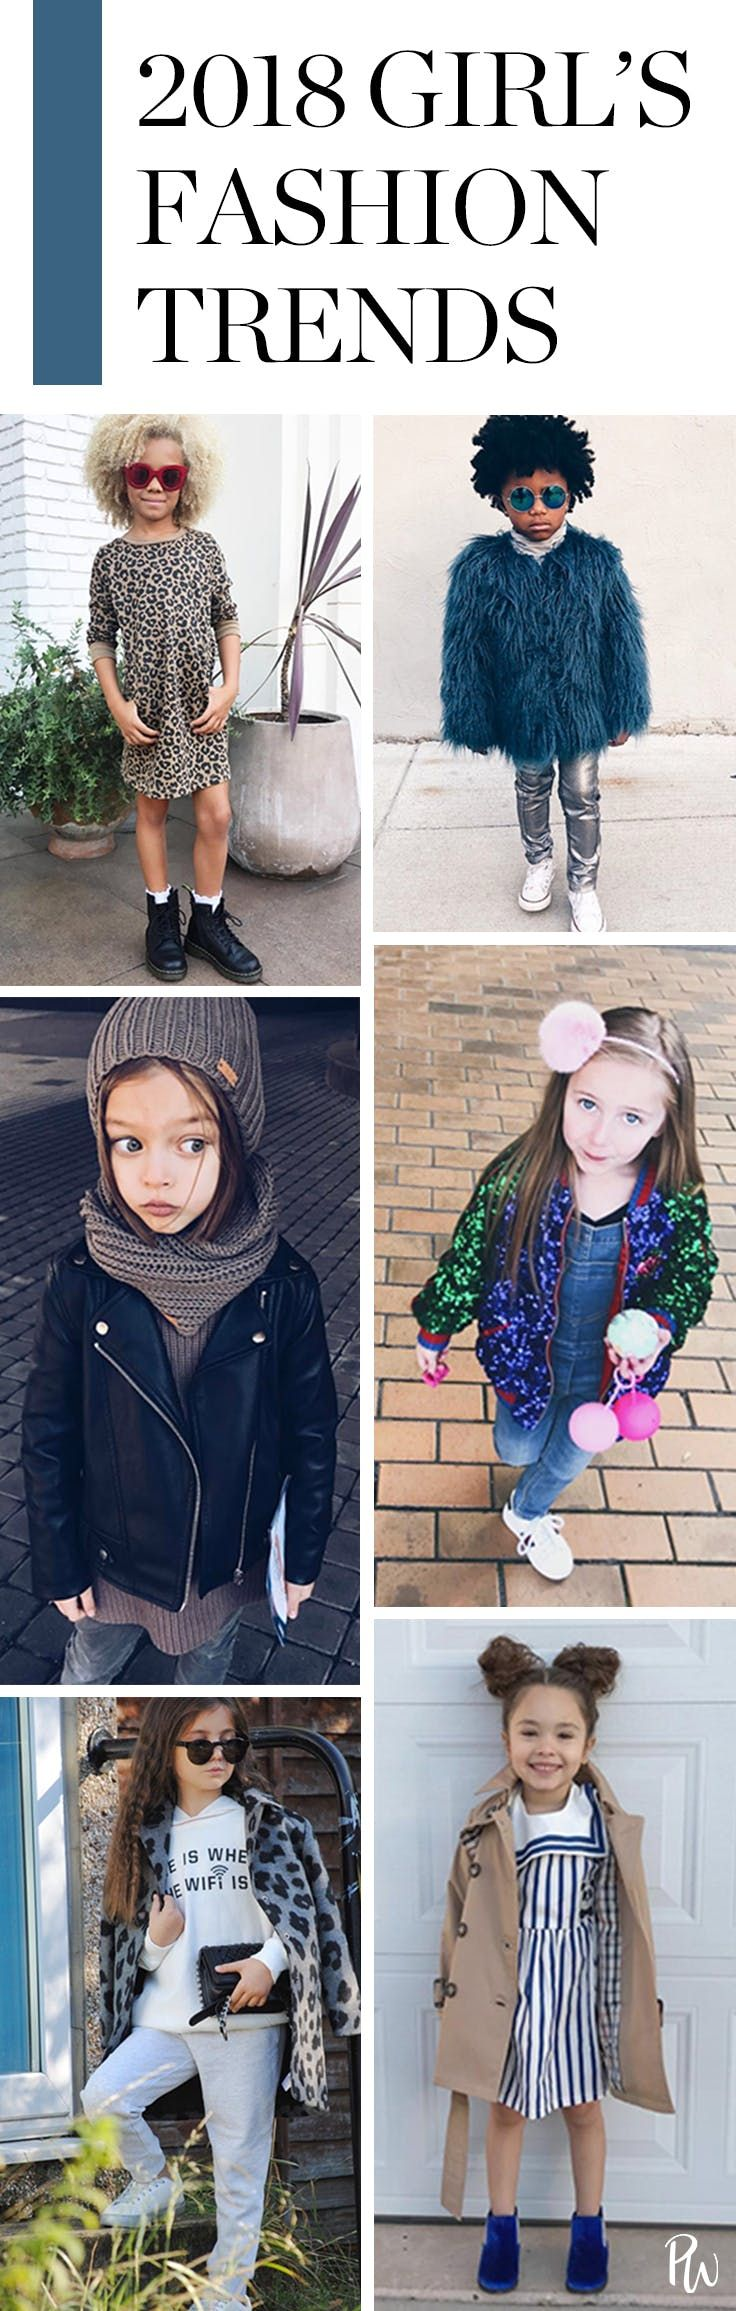 The Hottest Girls' Fashion Trends for 2018 #purewow #family #fashion #children